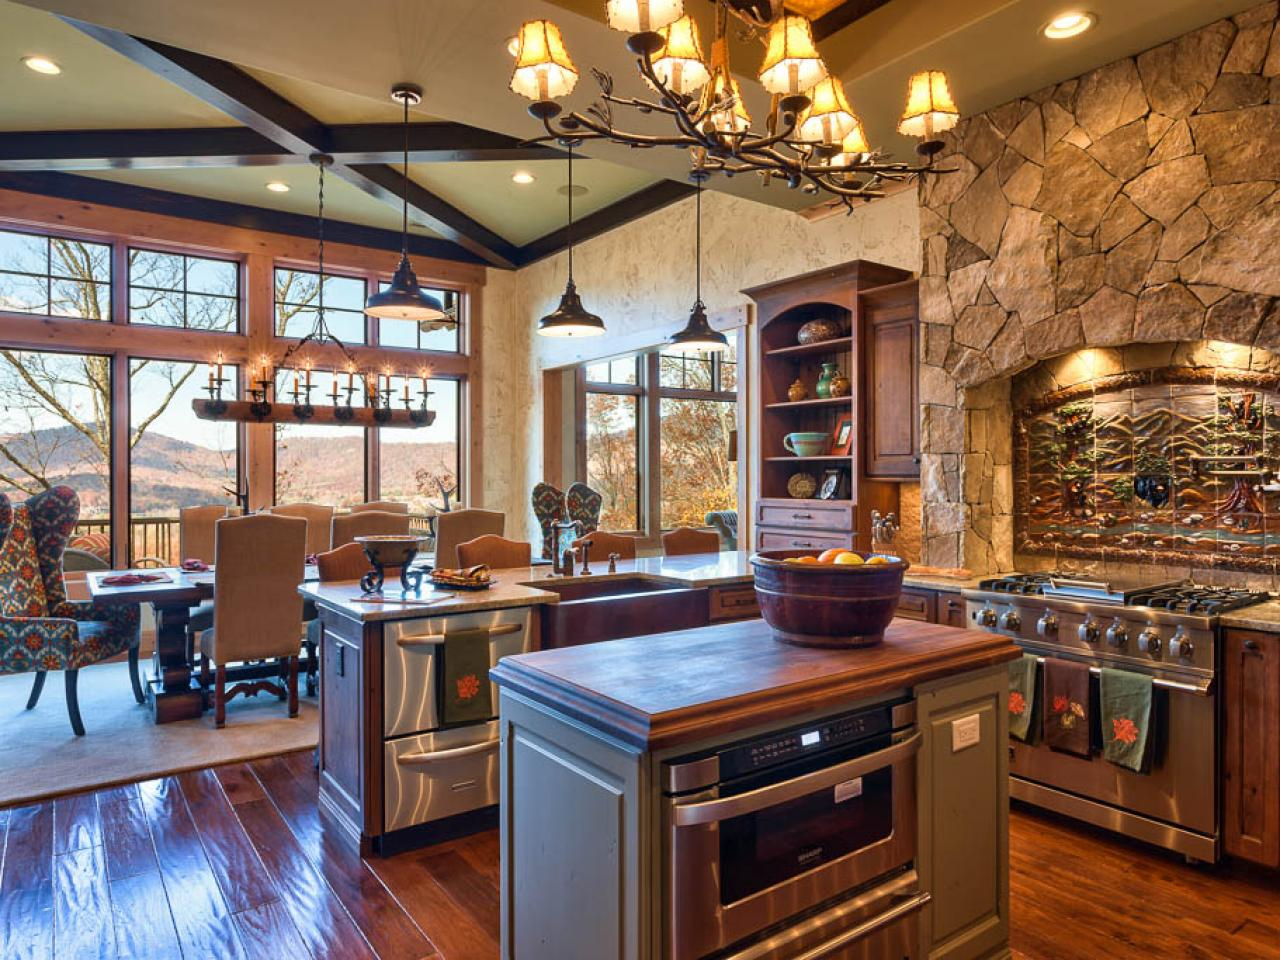 Rustic stone kitchen with country appeal heather guss hgtv Rustic kitchen designs